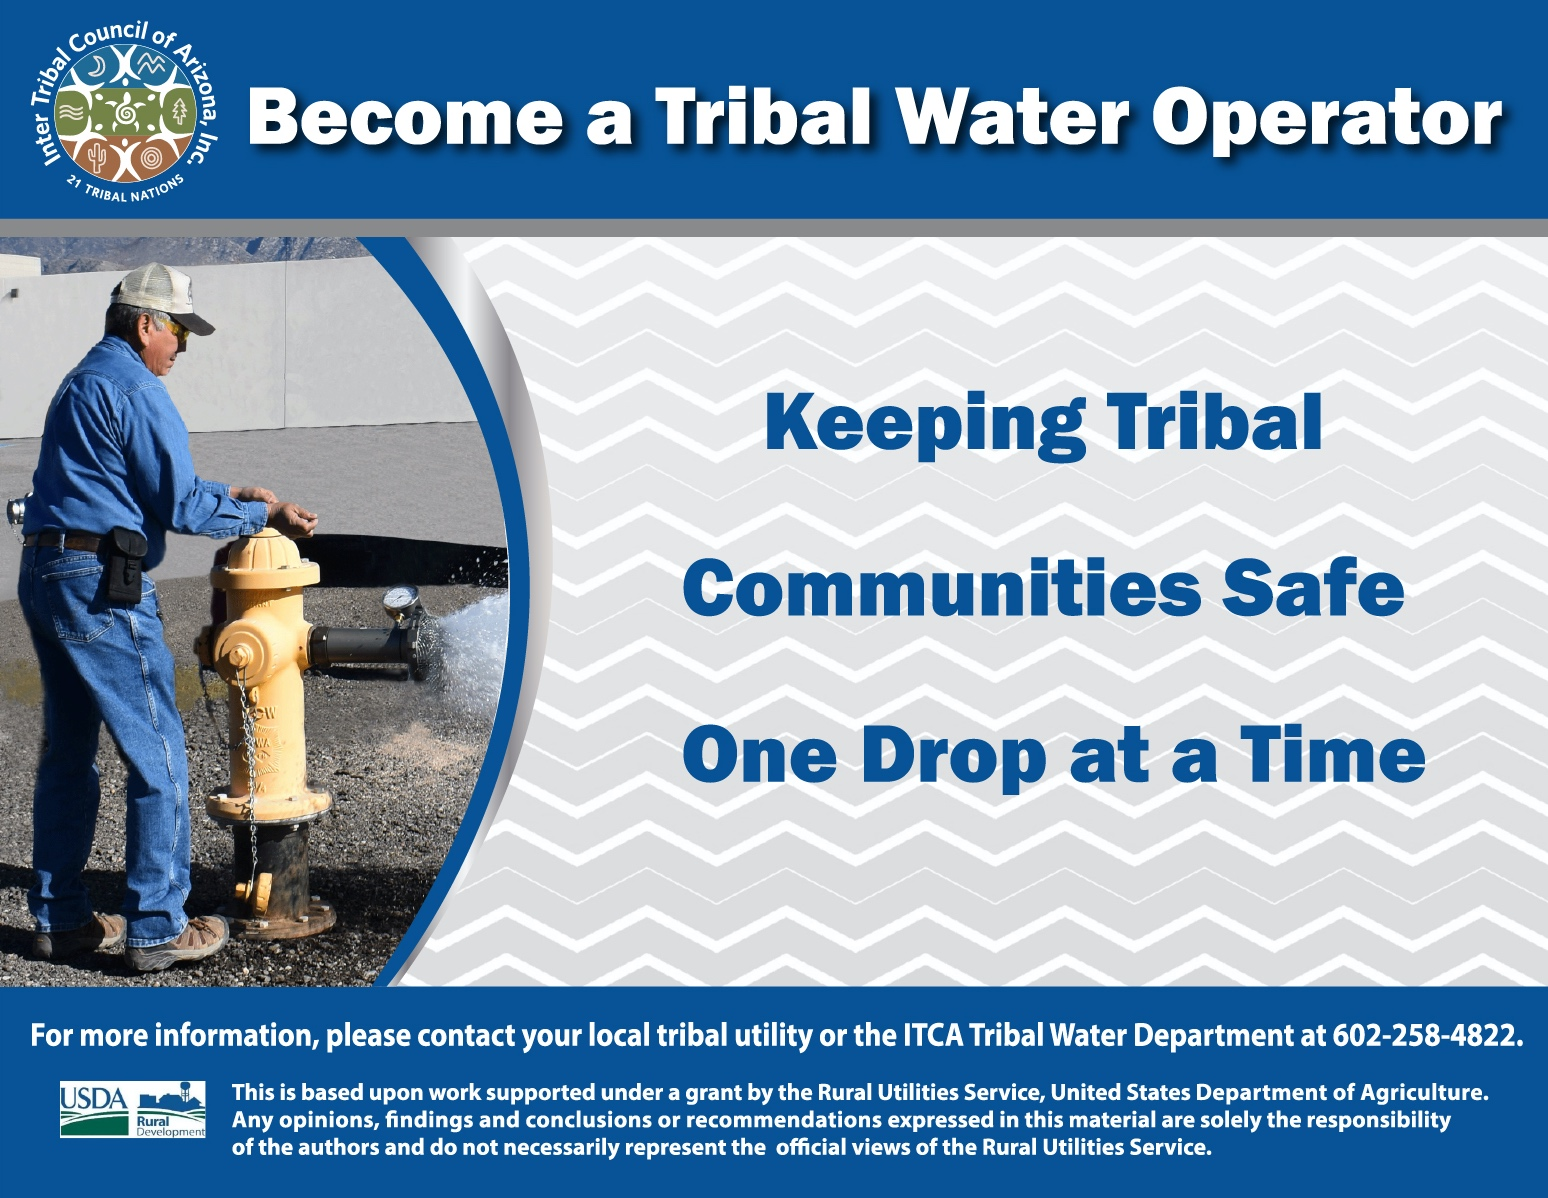 Become a Tribal Water Operator - InterTribal Council of Arizona